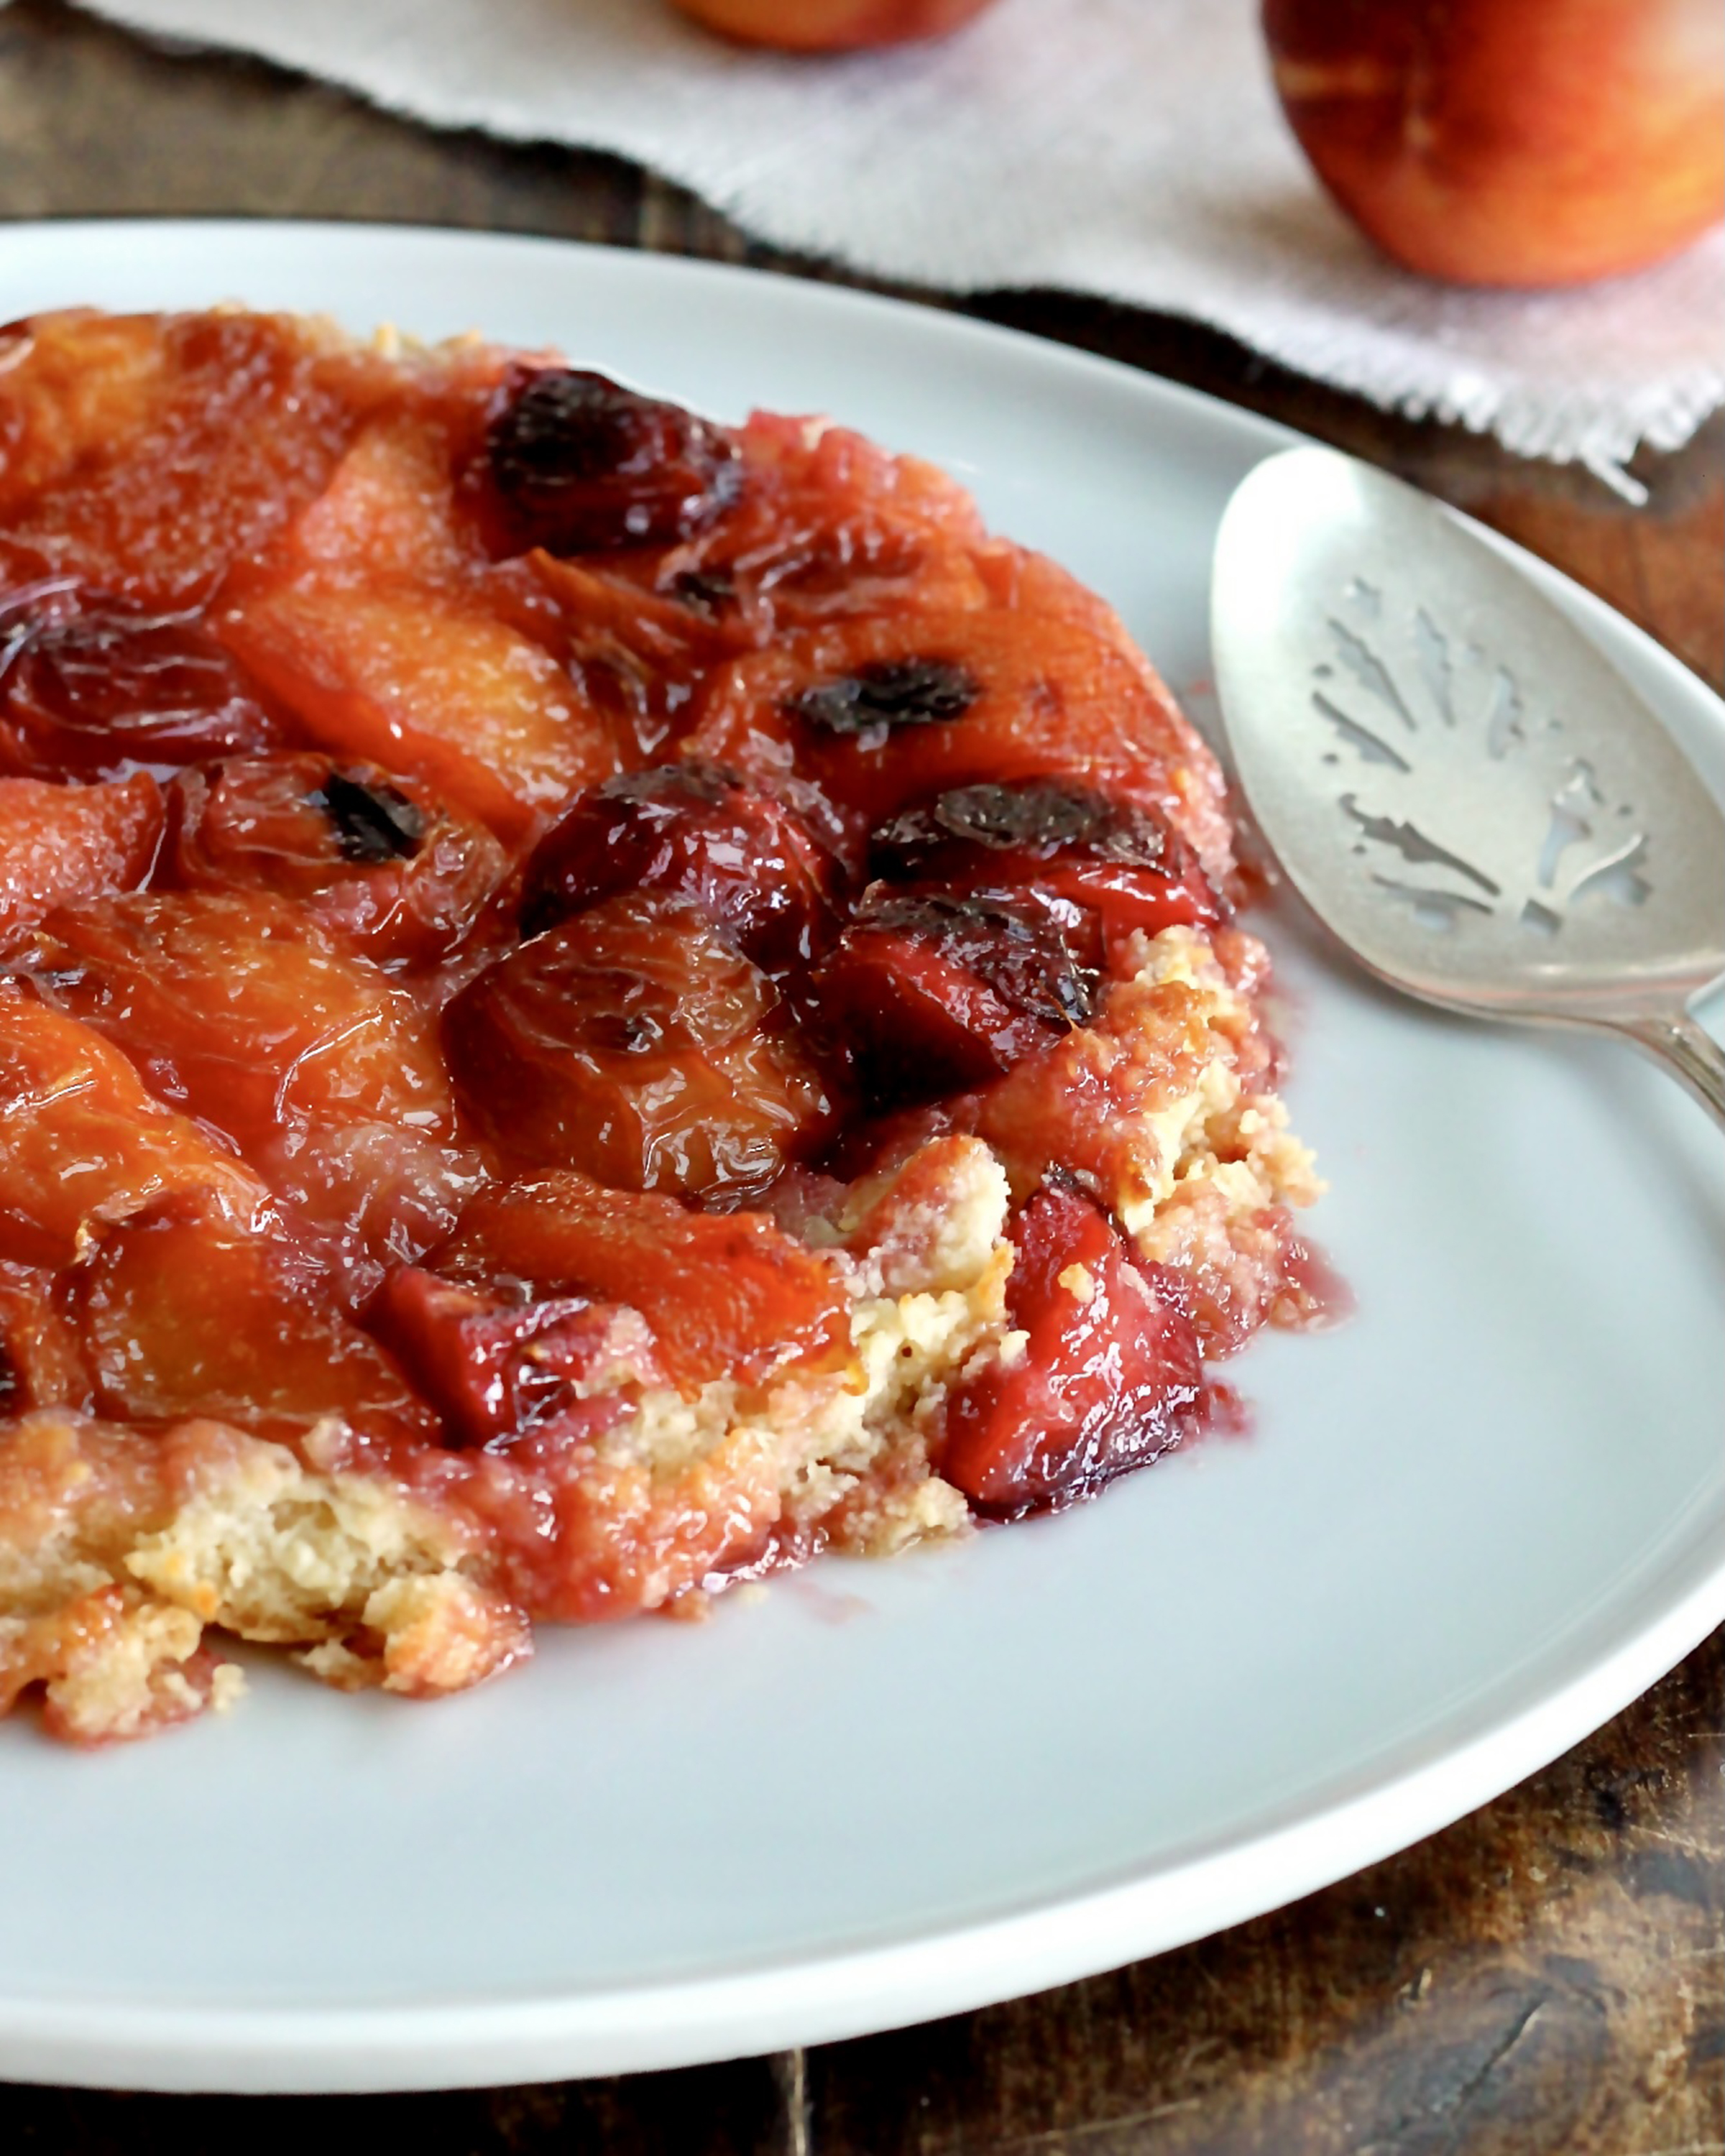 In this tarte Tatin recipe, the sweet tang of nectarines and plums melds beautifully with the caramel base, which then becomes the topping.